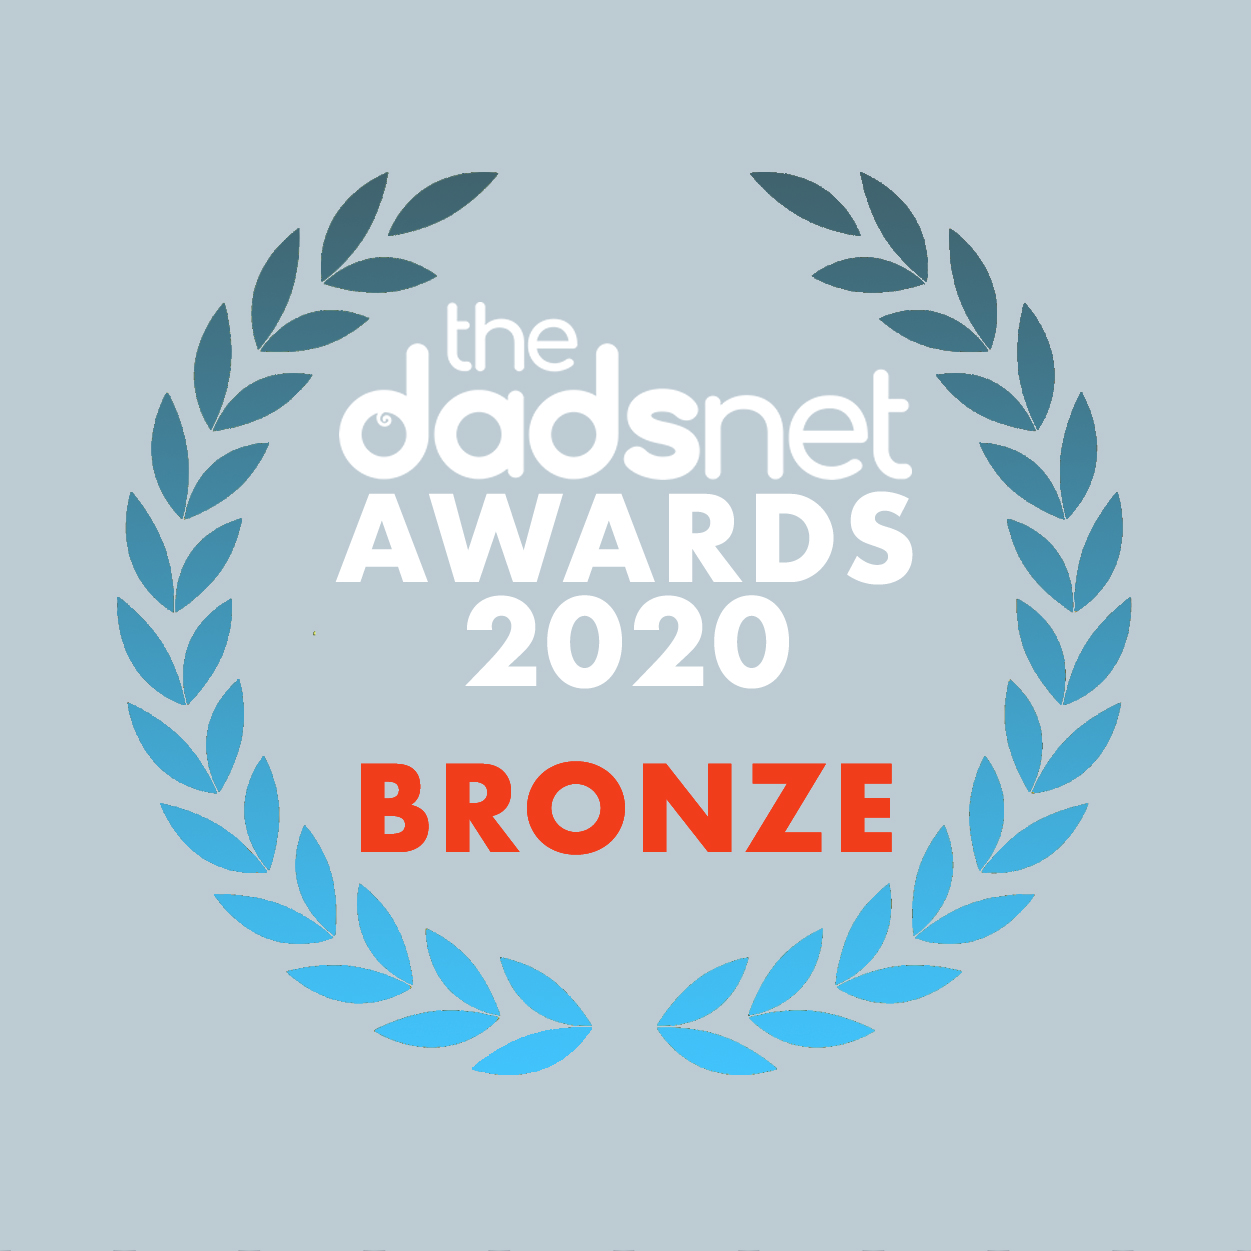 Dadsnet Product Awards 2020 - Winners Revealed, Dadsnet Product20Awards Bronze v01%, daily-dad%